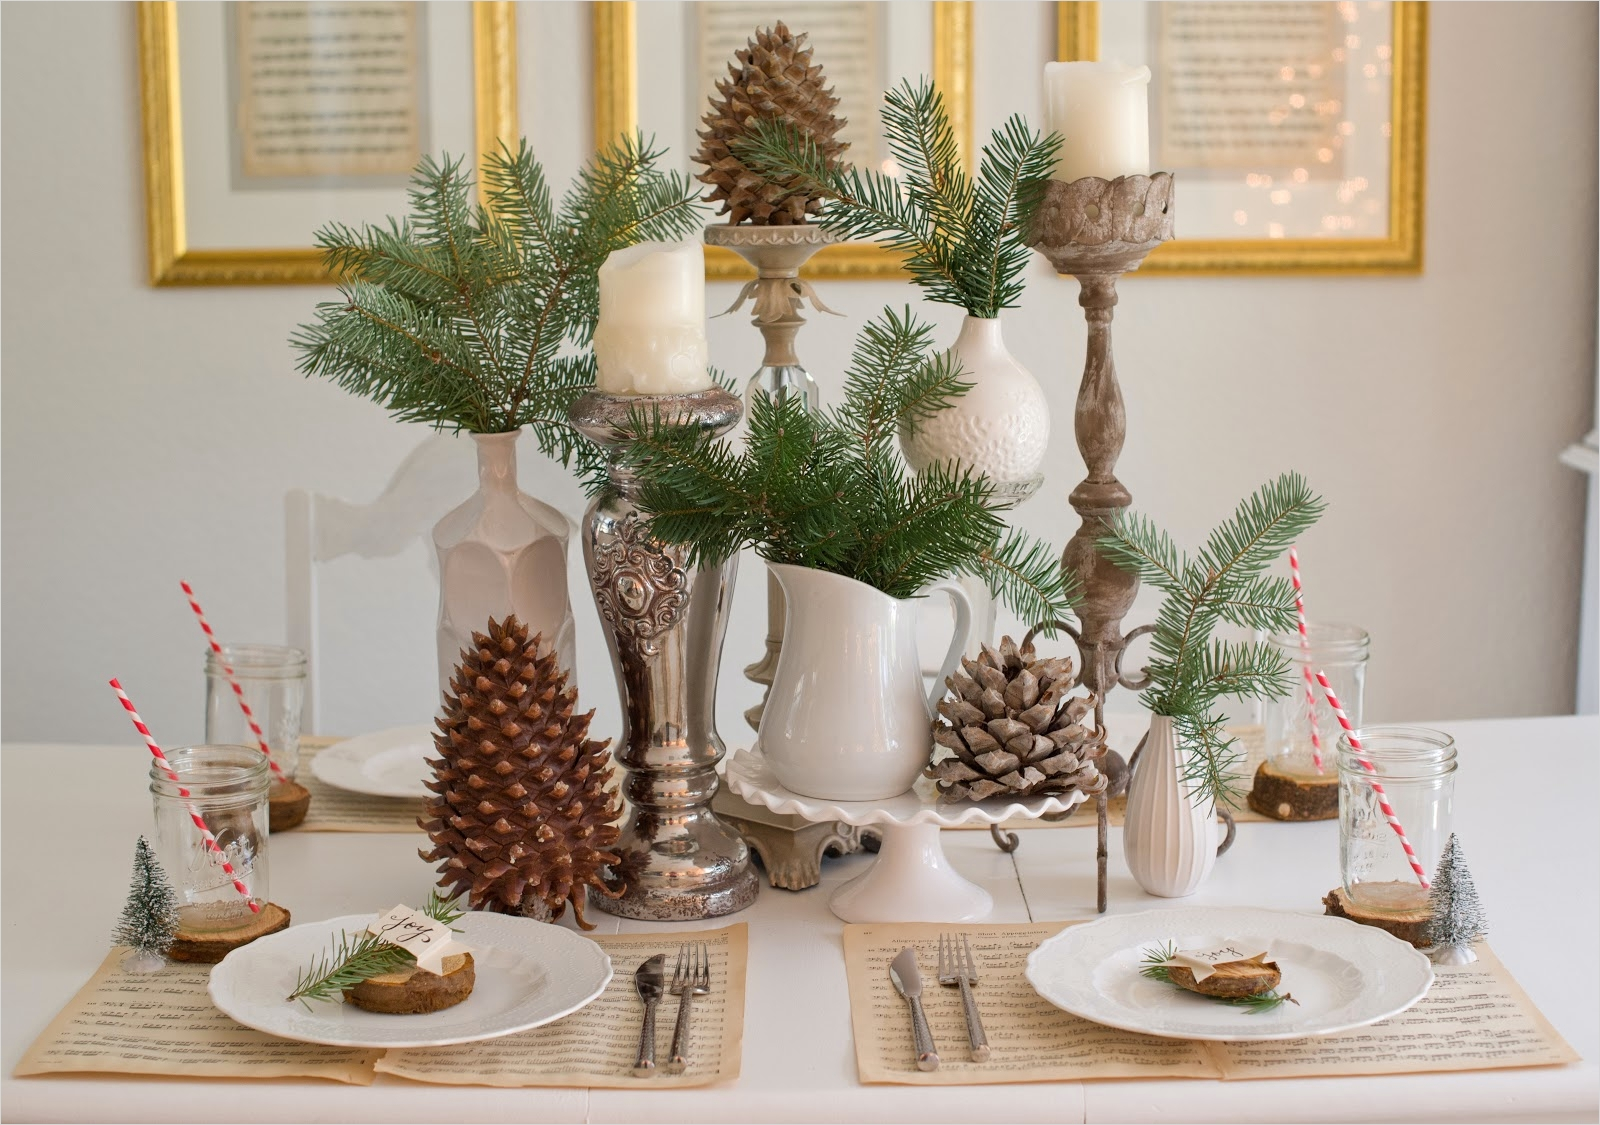 41 Adorable Christmas Table Centerpiece Ideas 2018 37